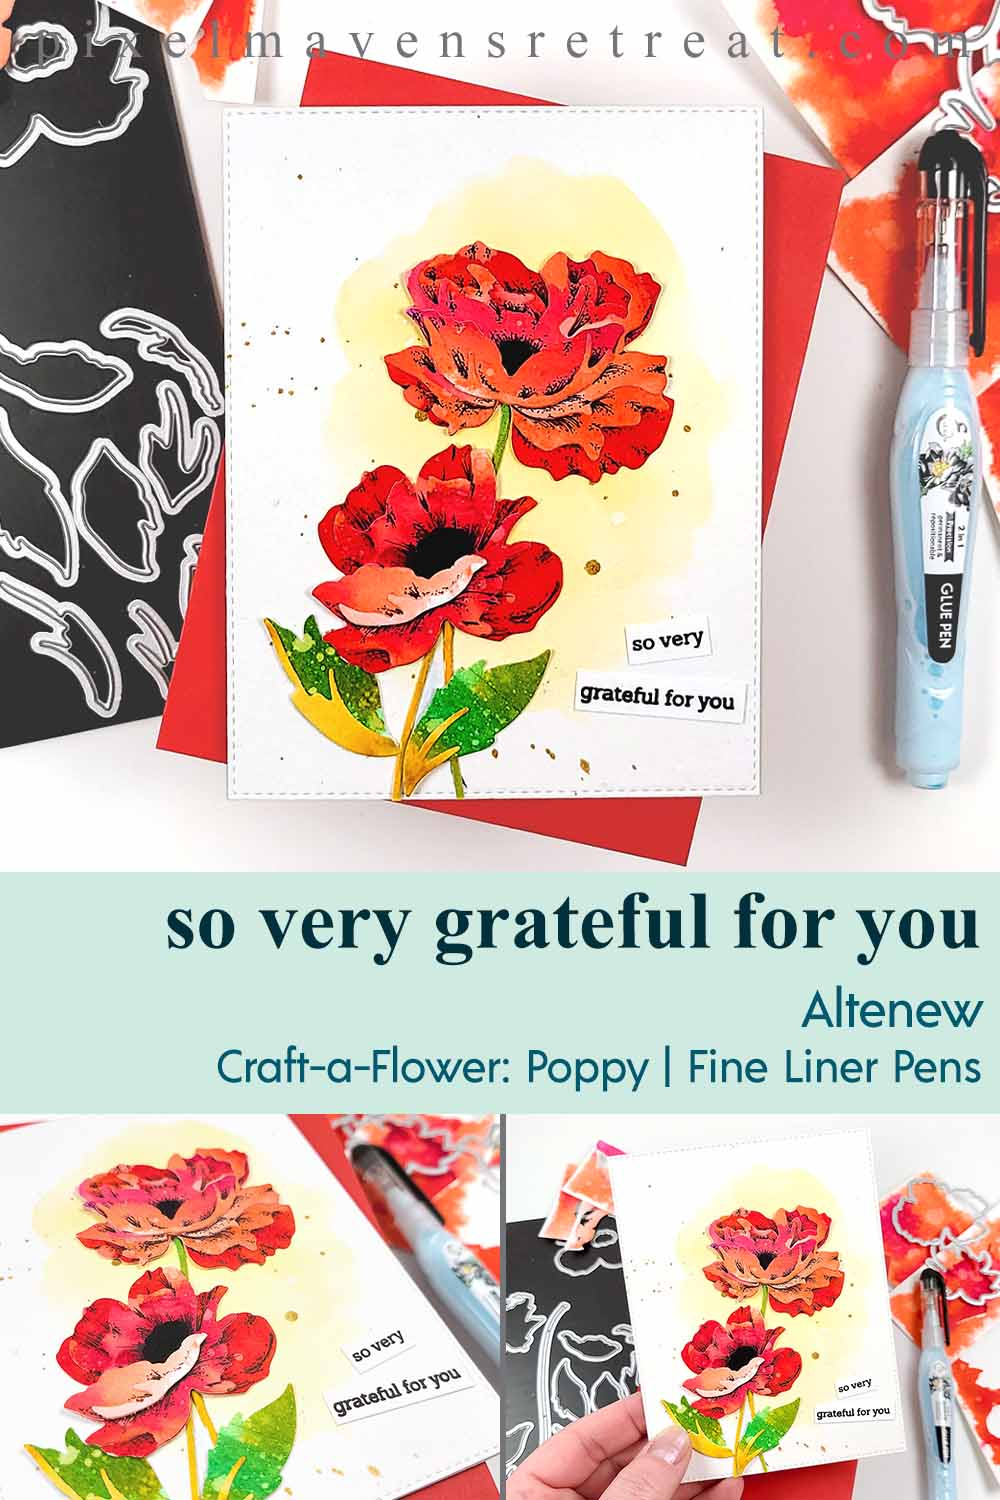 Craft-A-Flower: Poppy release blog hop